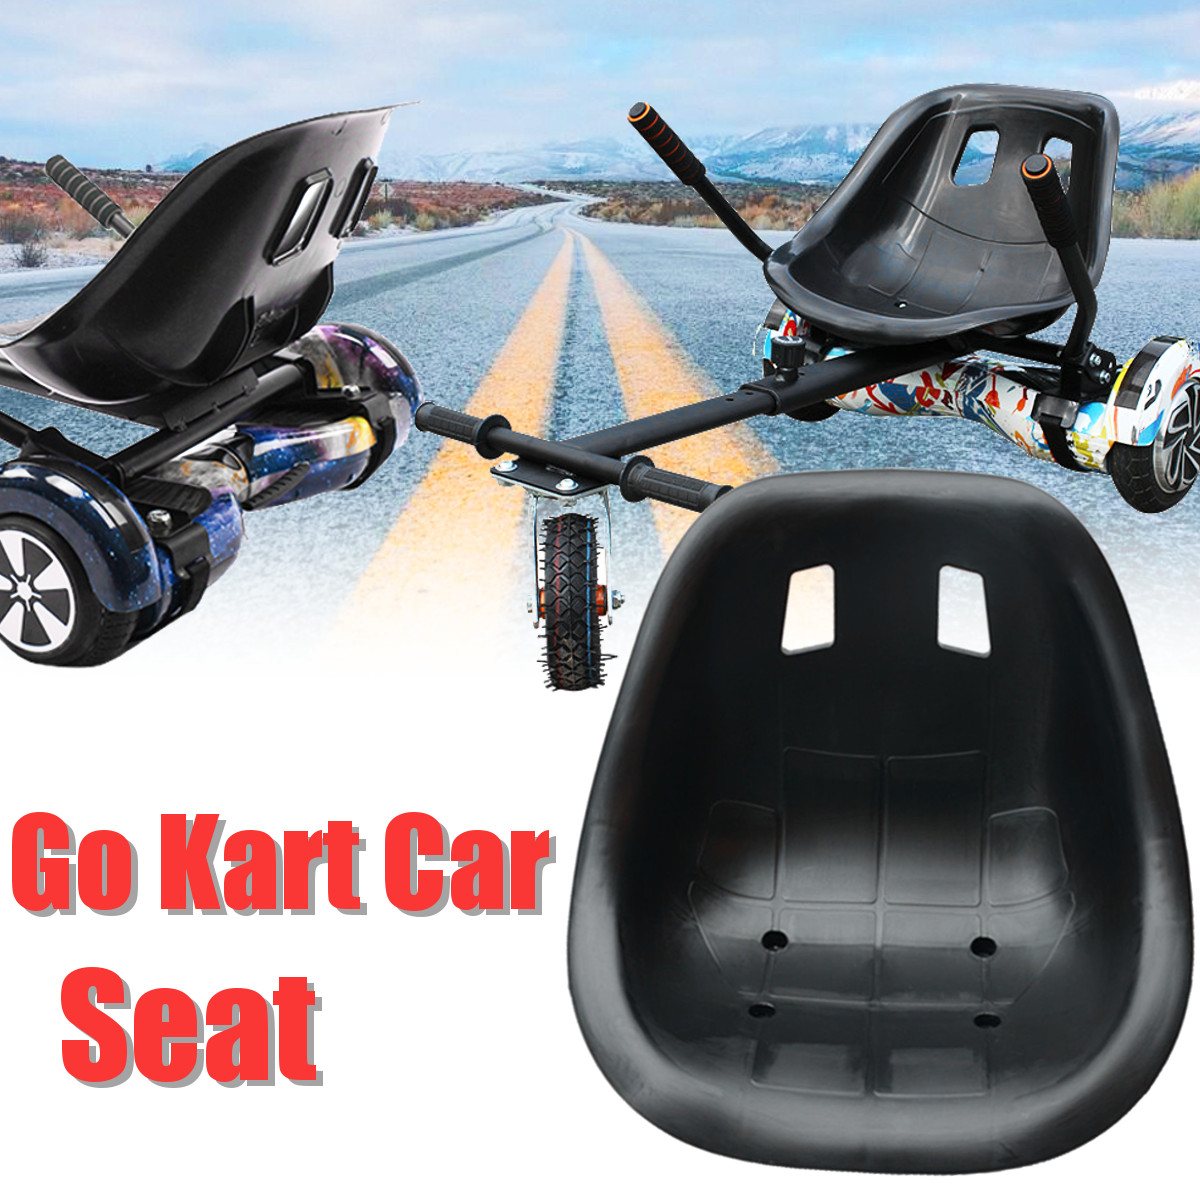 43.3x34.5cm Saddle Replacement Drift Balancing Vehicle Go Kart Car Seat For Drift Trike Racing Go Kart Black43.3x34.5cm Saddle Replacement Drift Balancing Vehicle Go Kart Car Seat For Drift Trike Racing Go Kart Black